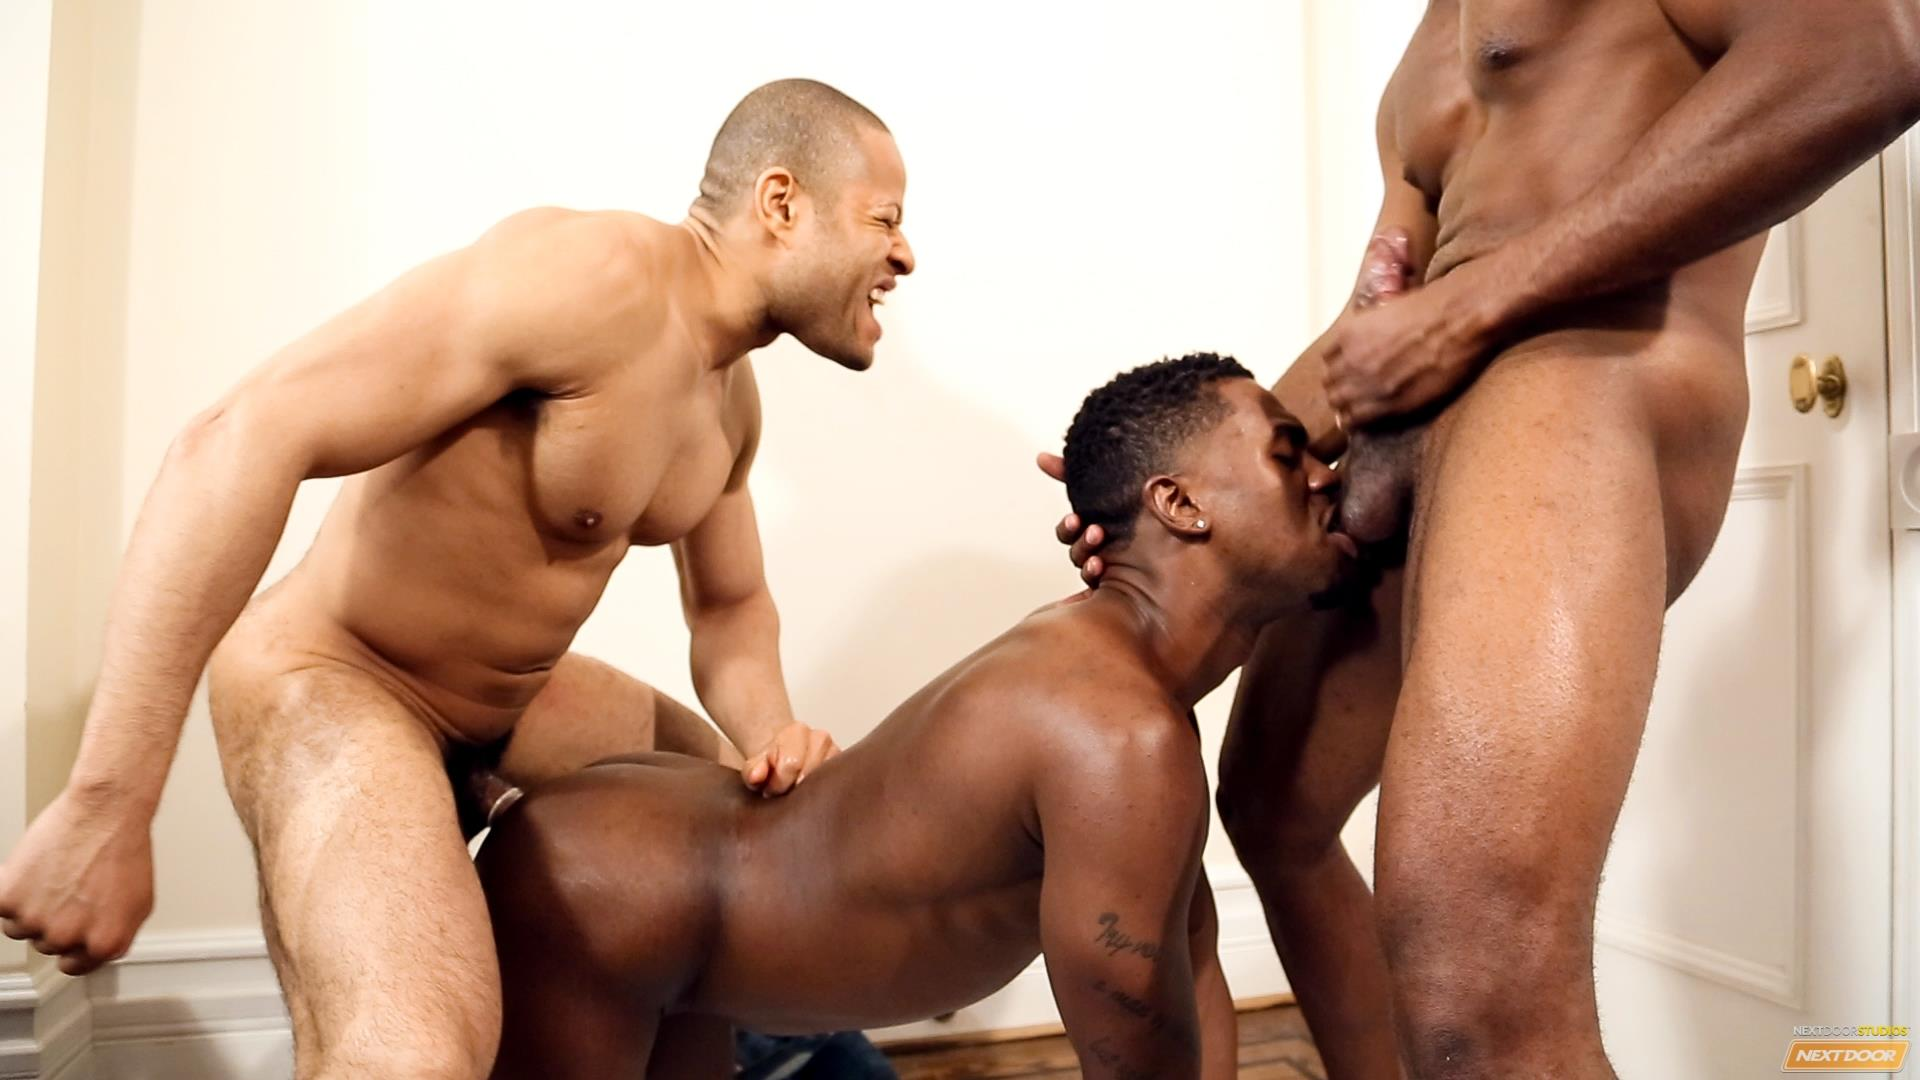 Next-Door-Ebony-Krave-Moore-and-Andre-Donovan-and-Rex-Cobra-Big-Black-Cock-Amateur-Gay-Porn-15 Three Black Guys Playing Strip Dominoes With Their Big Black Cocks